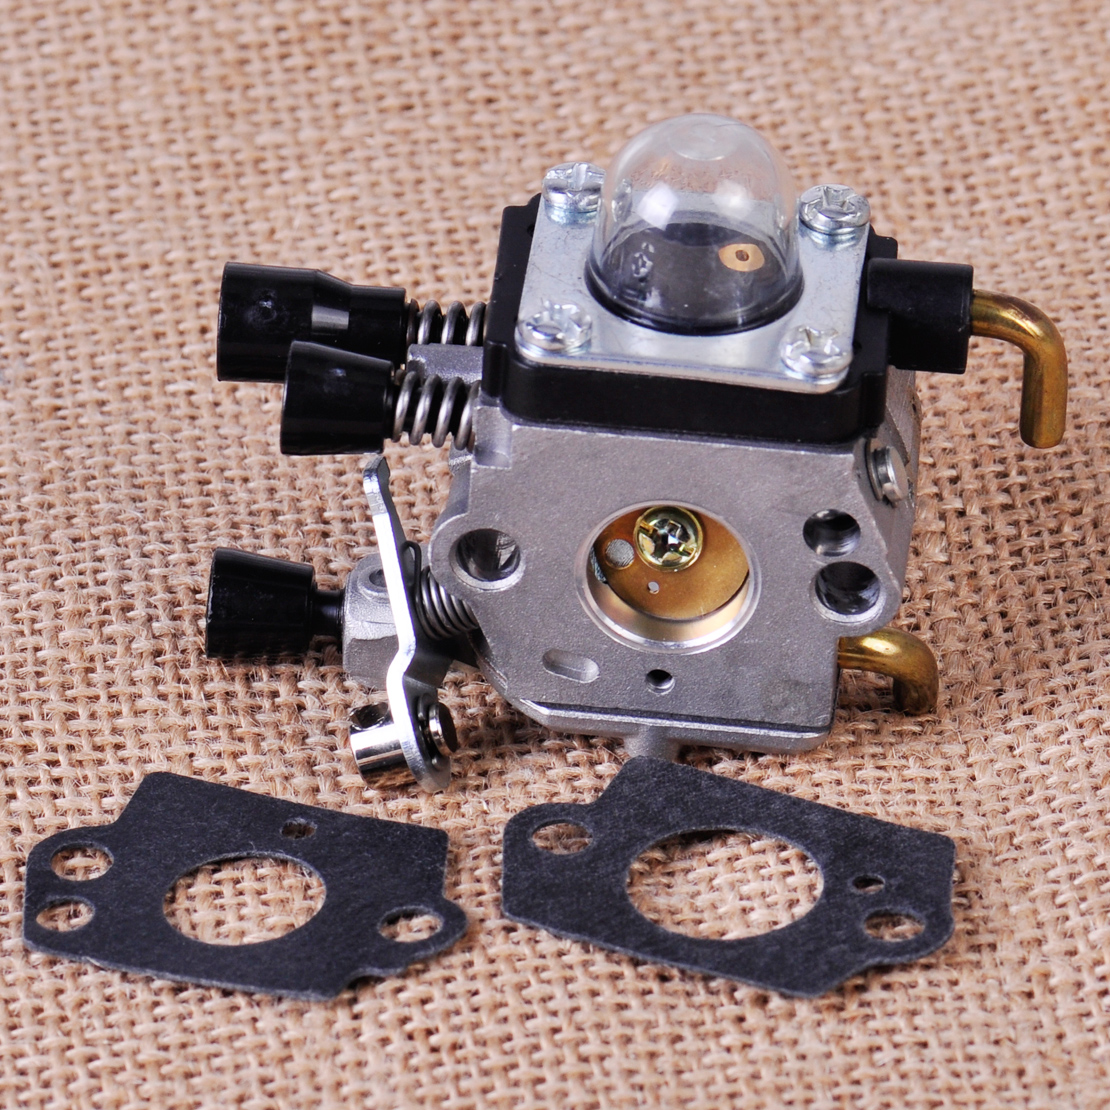 Lawn Mower Clever Letaosk Carburetor Carb Gasket Fit For Stihl Fs38 Hl45 Fs45 Fs46 Fs46c Fs55 Km55 Km55rc Zama C1q-s66 C1q-s71 Back To Search Resultstools